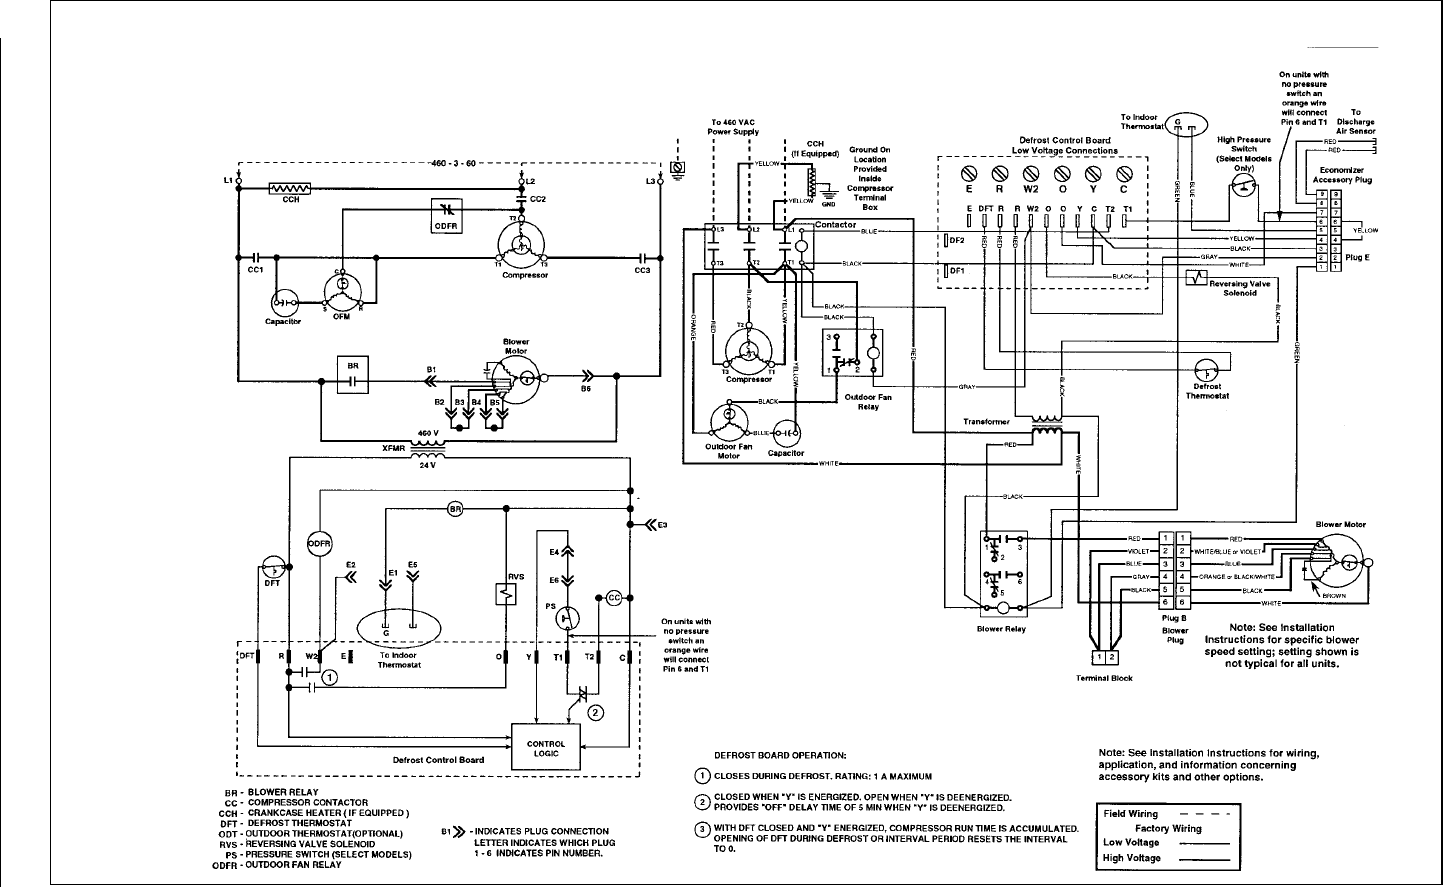 Gas Furnace Schematic Wiring Diagram, Gas, Free Engine